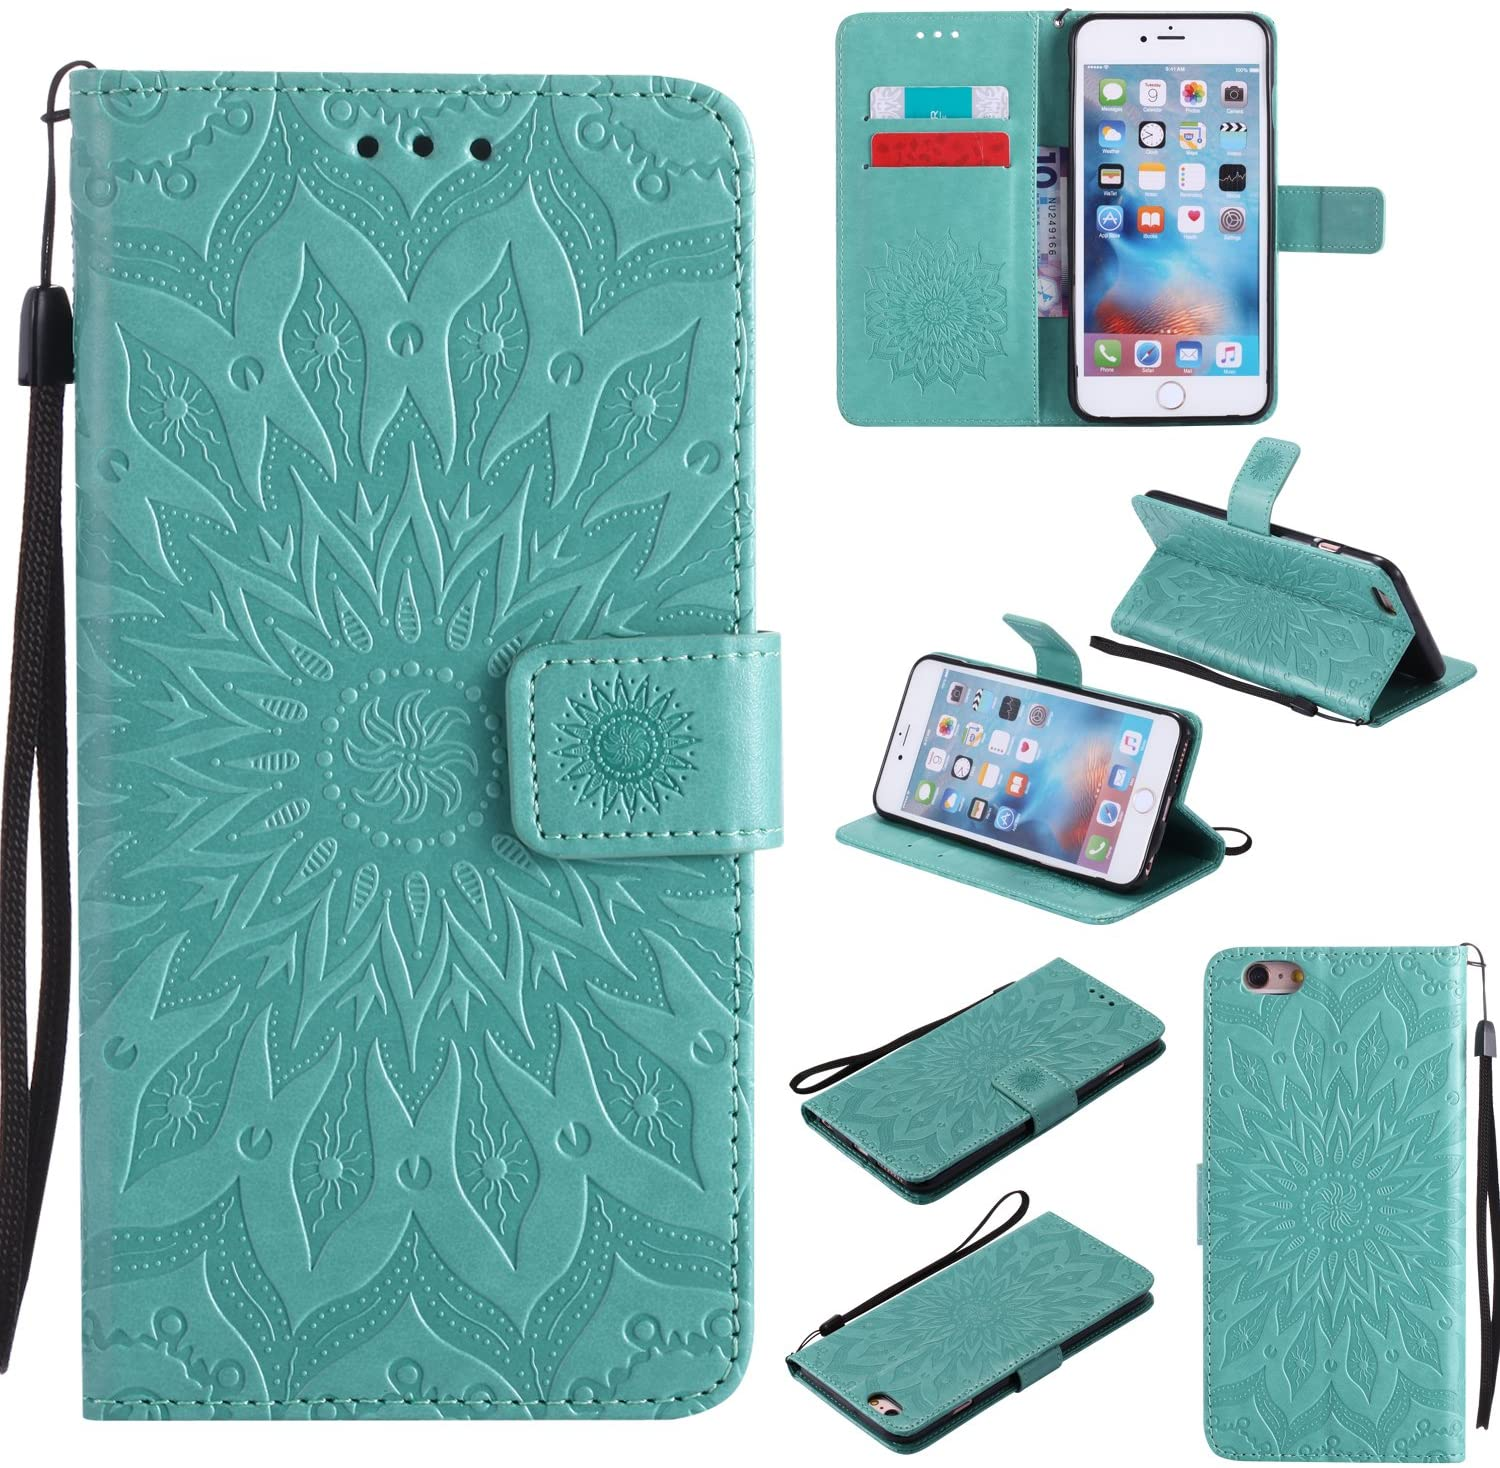 A-slim iPhone 6S Plus Wallet Case, (TM) Sun Pattern Embossed PU Leather Magnetic Flip Cover Card Holders & Hand Strap Wallet Purse Case for iPhone 6 Plus / 6S Plus [5.5 Inch] - Green